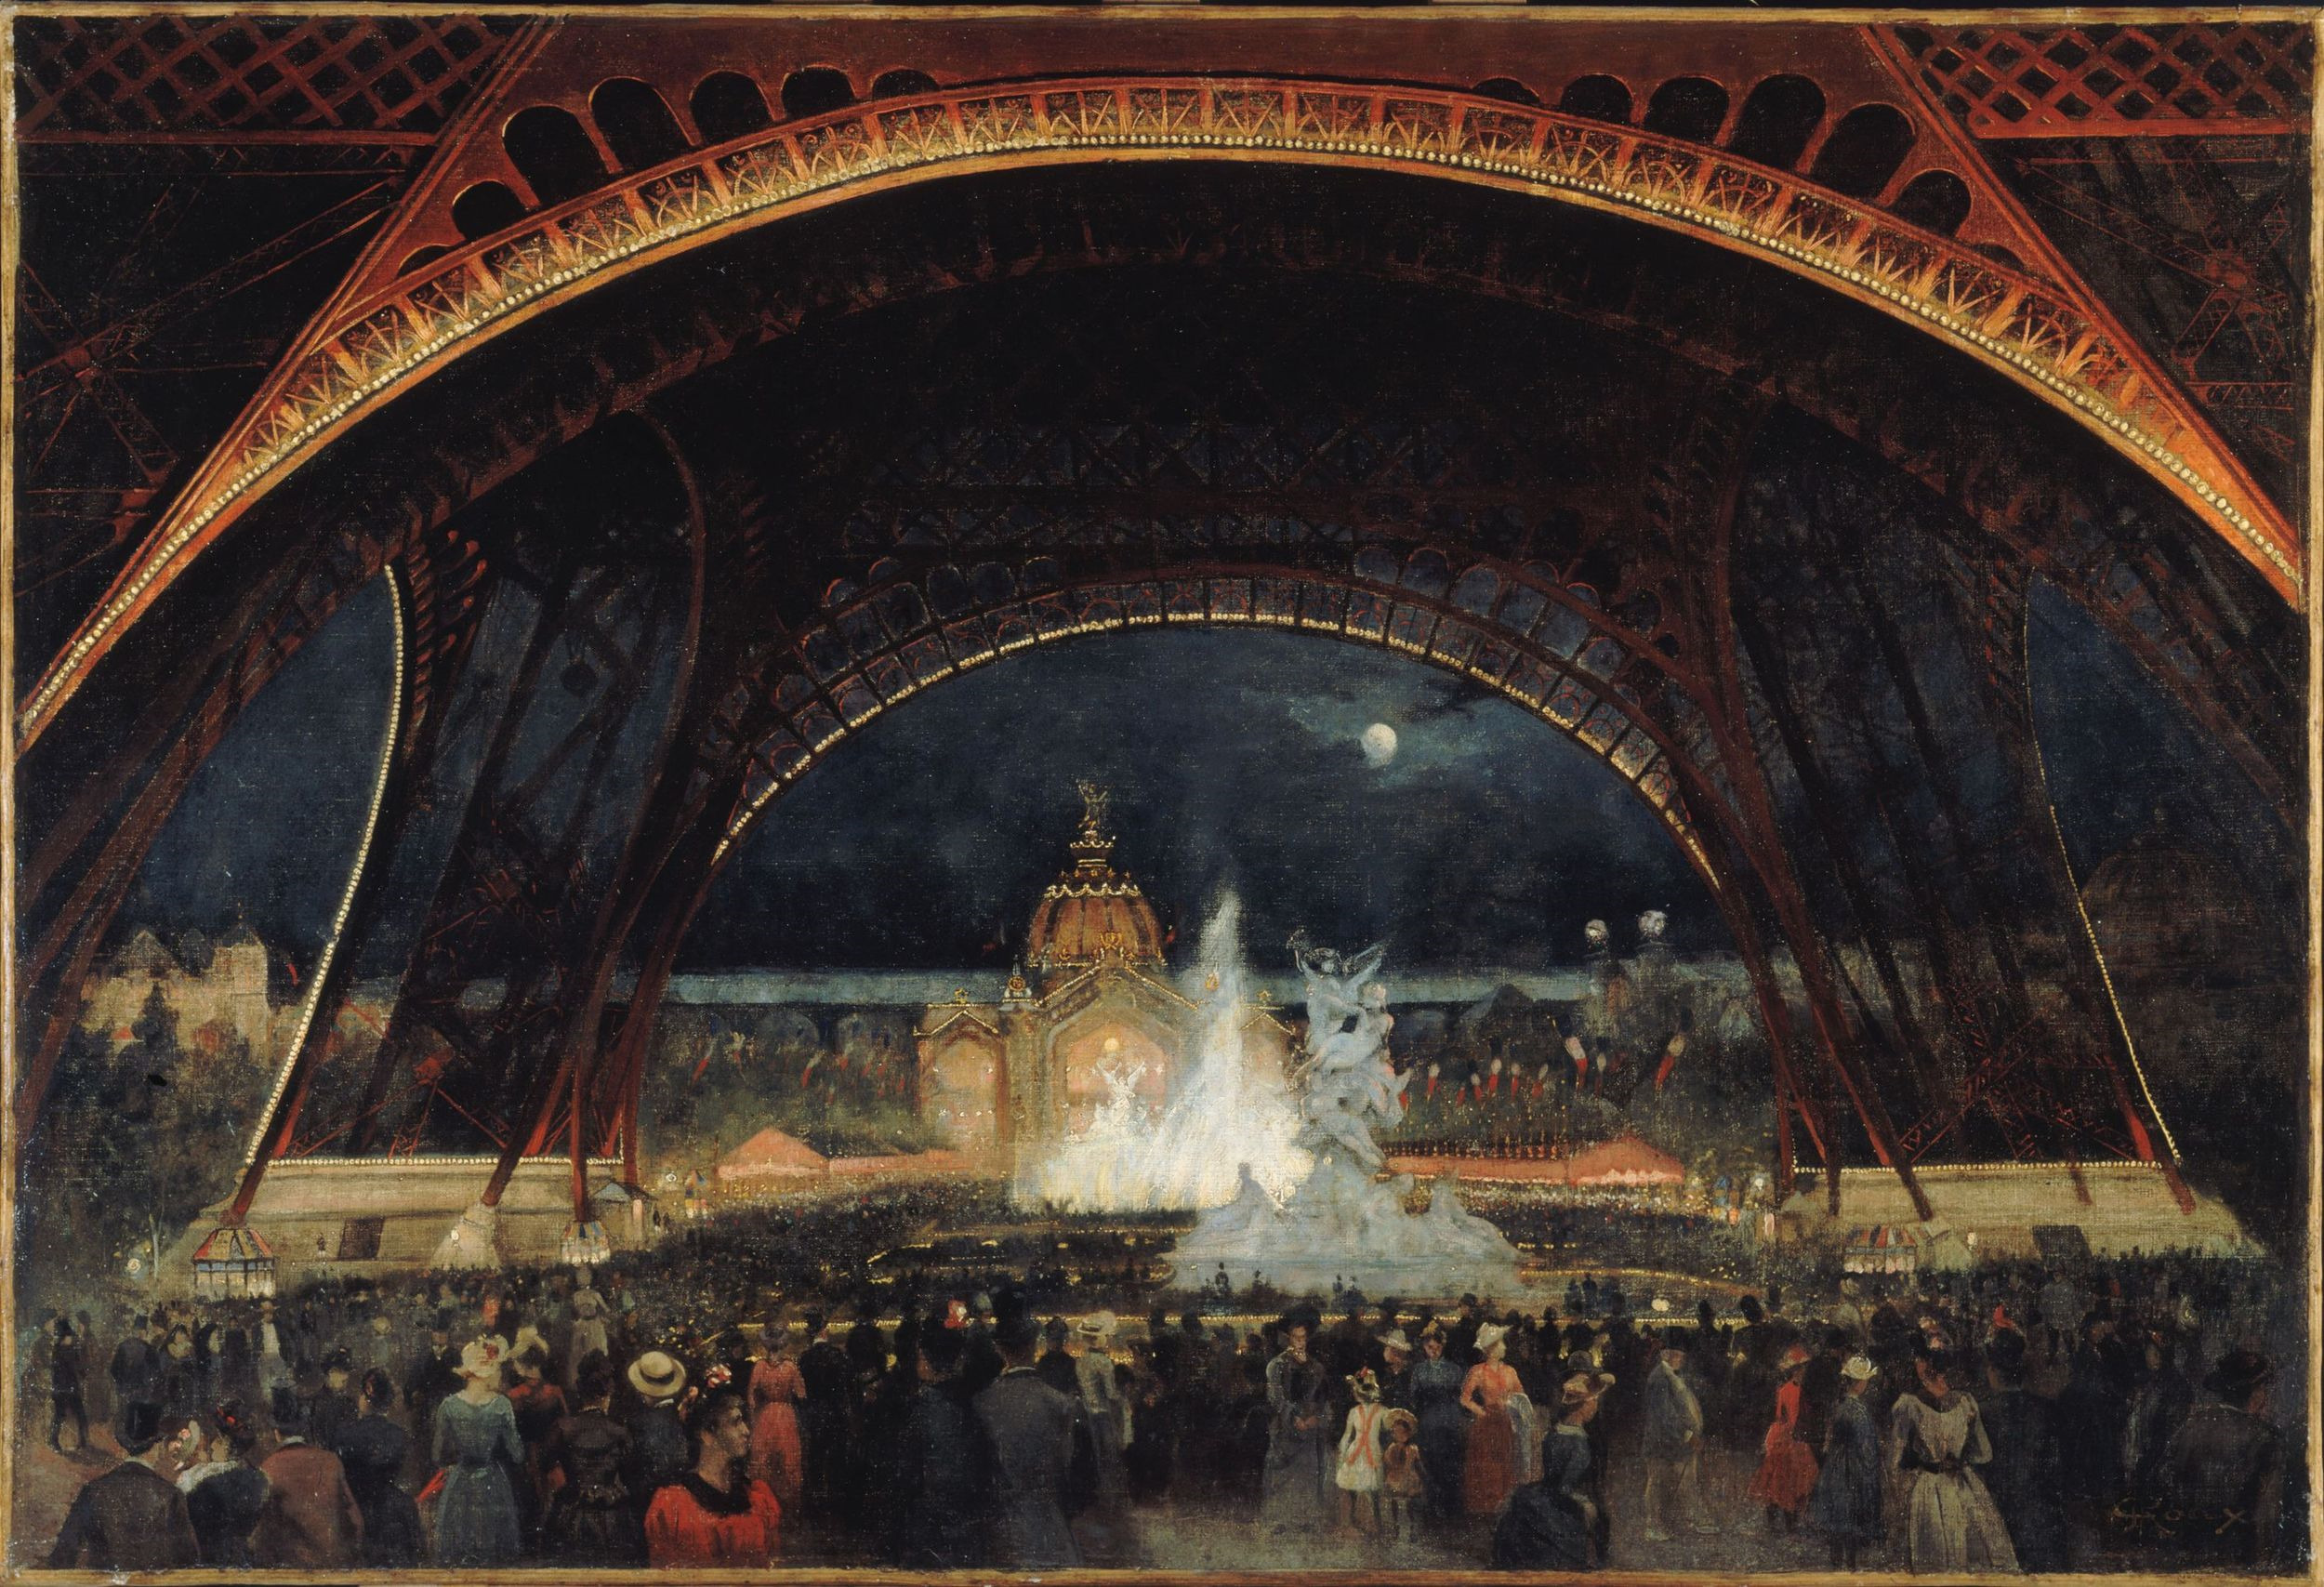 3 Paris-1900-Alexandre-Georges Roux-NighttimeFestivities-1889